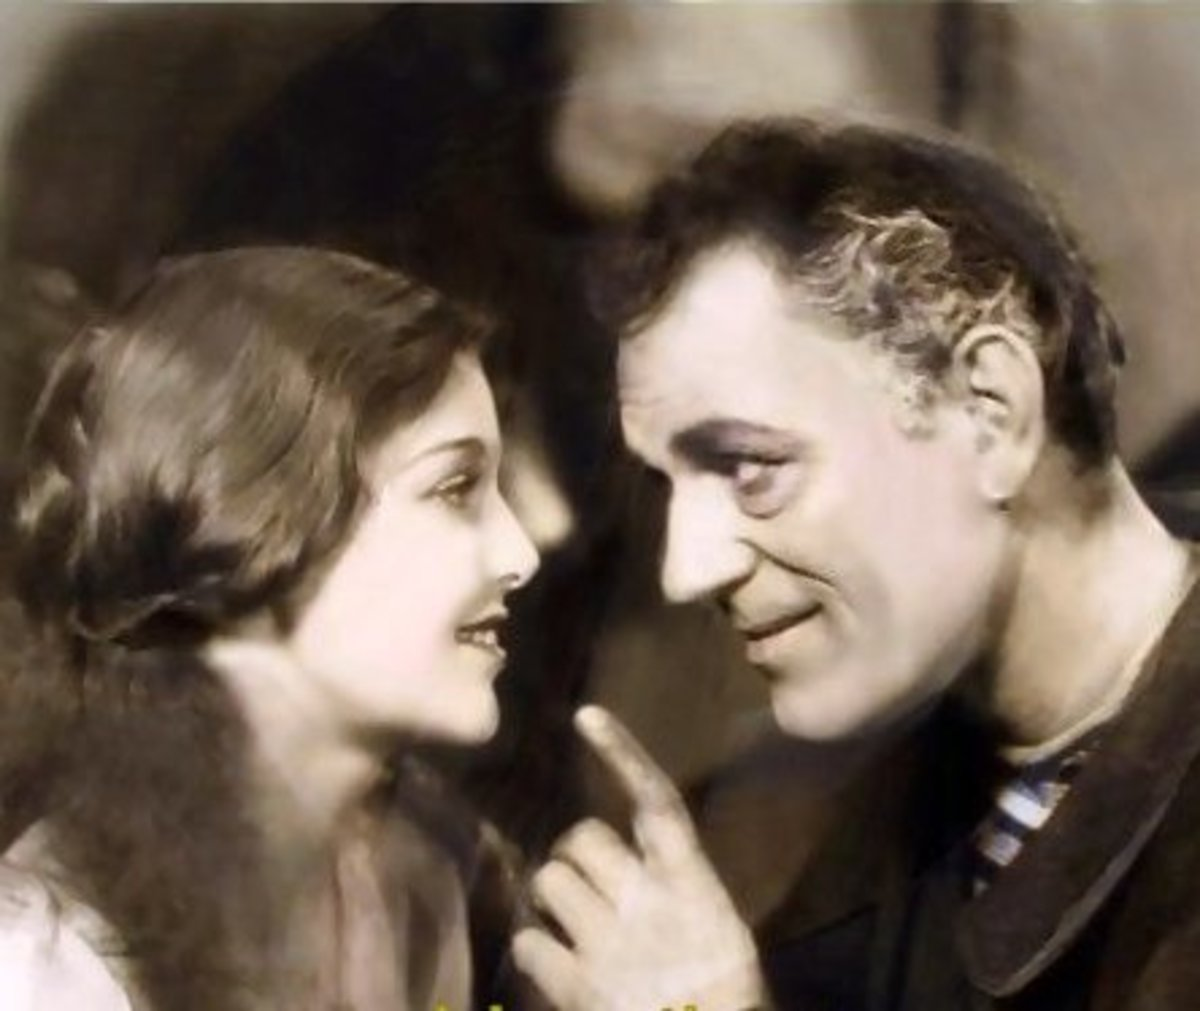 1929, aged 15, with Lon Chaney in 'Laugh, Clown, Laugh'